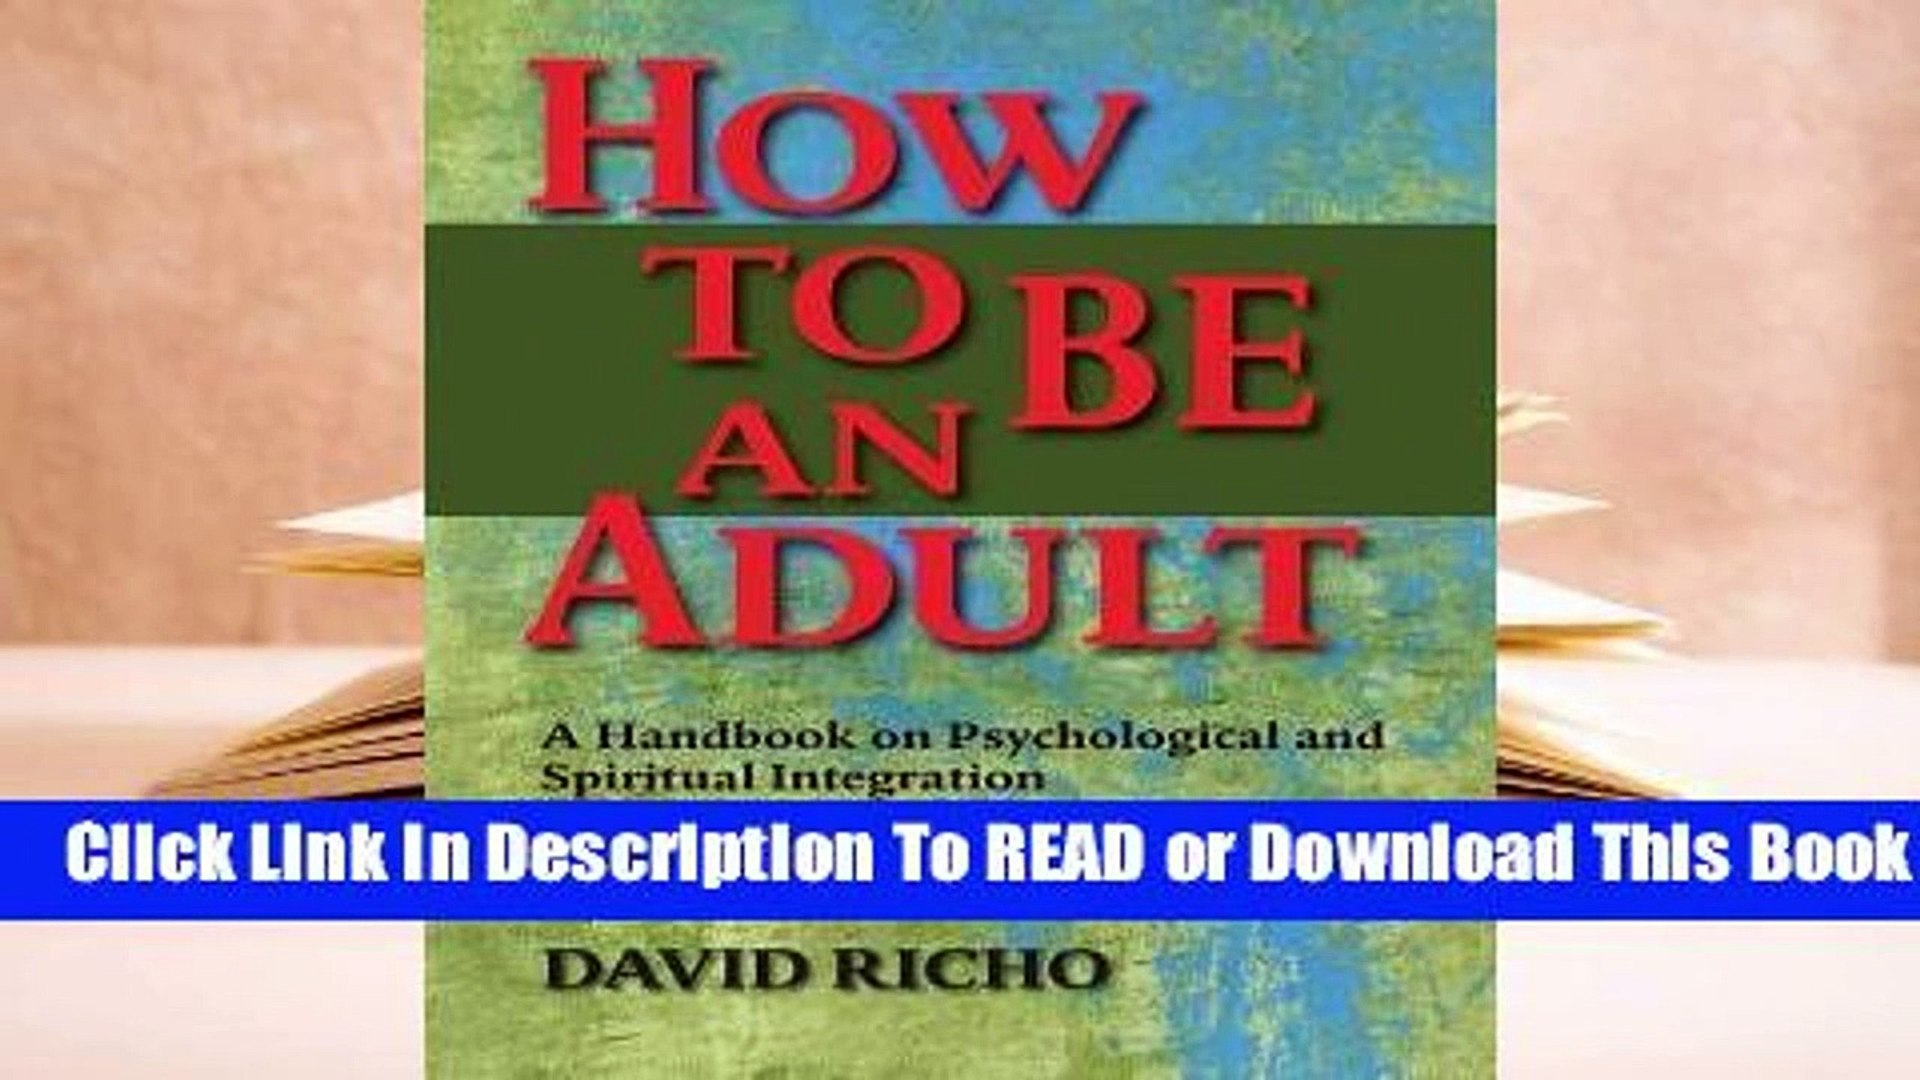 Full E-book How to Be an Adult: A Handbook on Psychological and Spiritual Integration  For Free